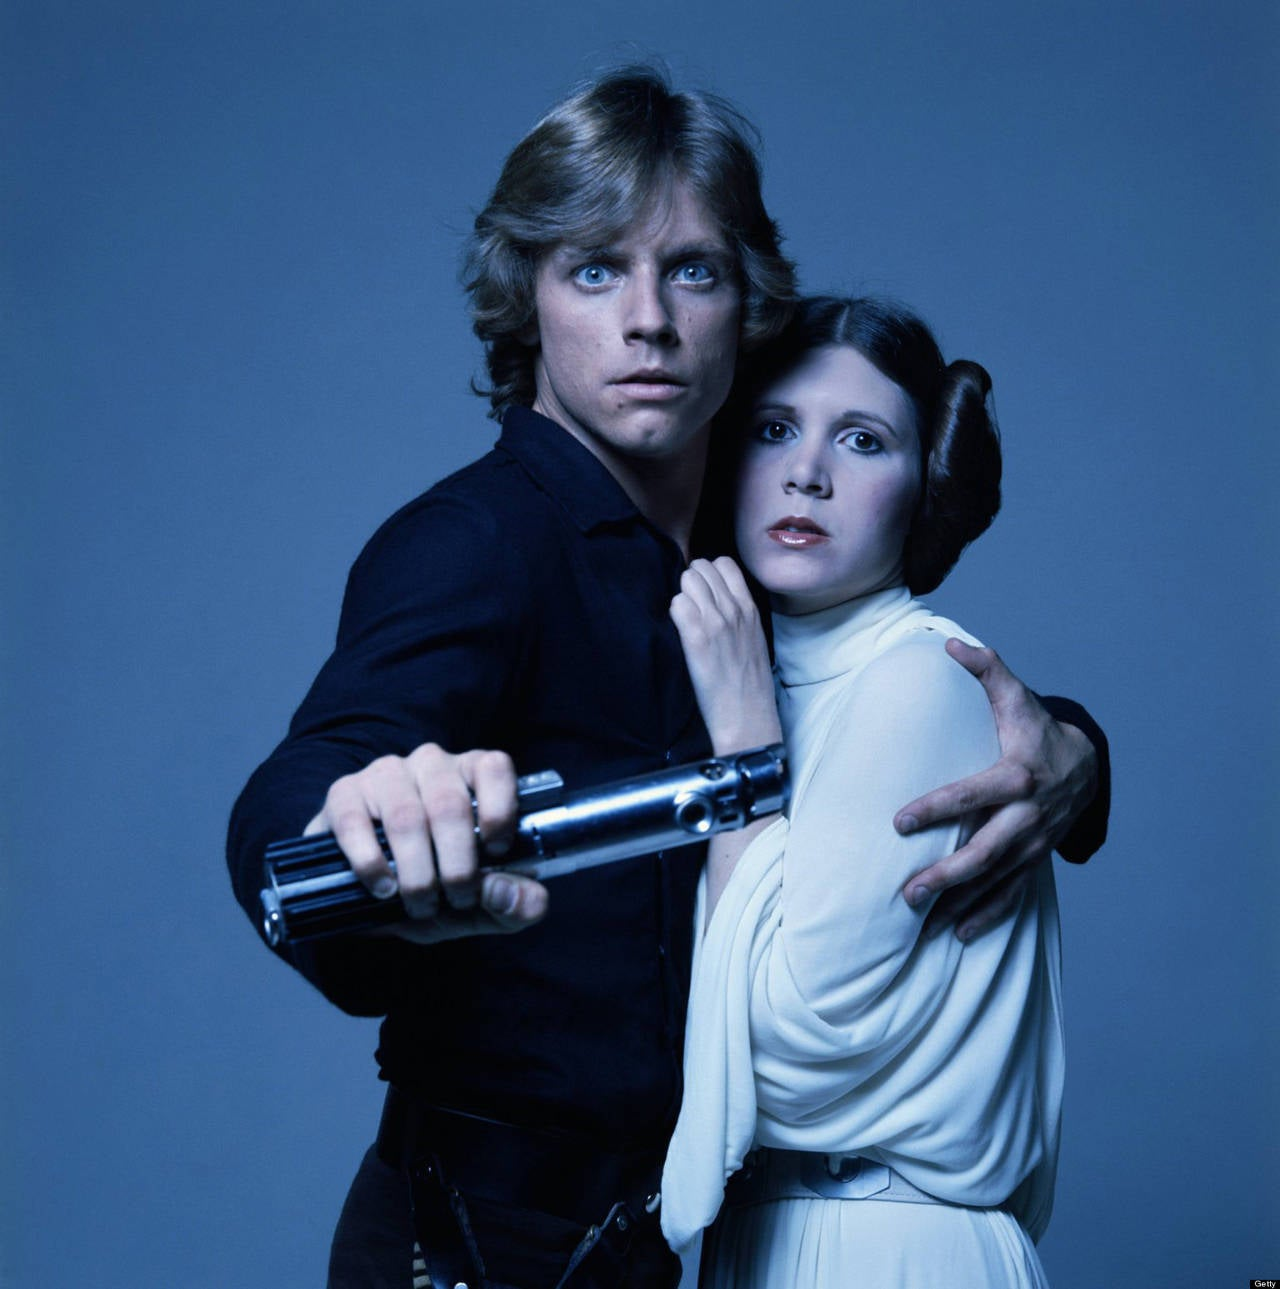 Luke and Leia (Mark Hamill and Carrie Fisher) Star Wars